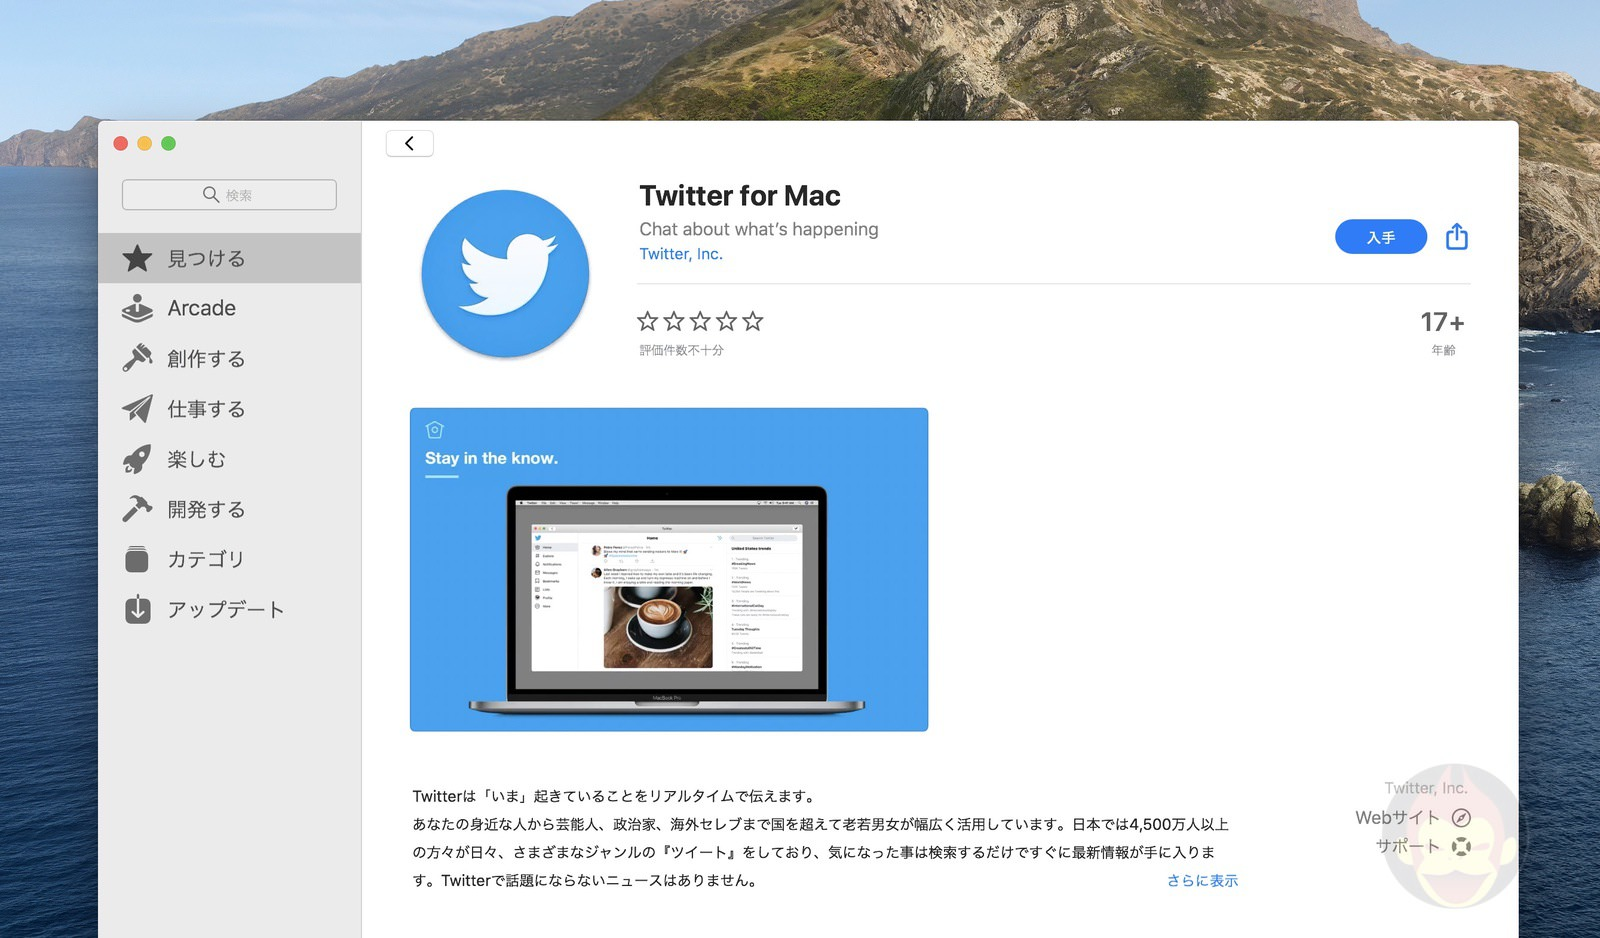 Twitter-for-Mac-comes-back-to-App-Store-01.jpg